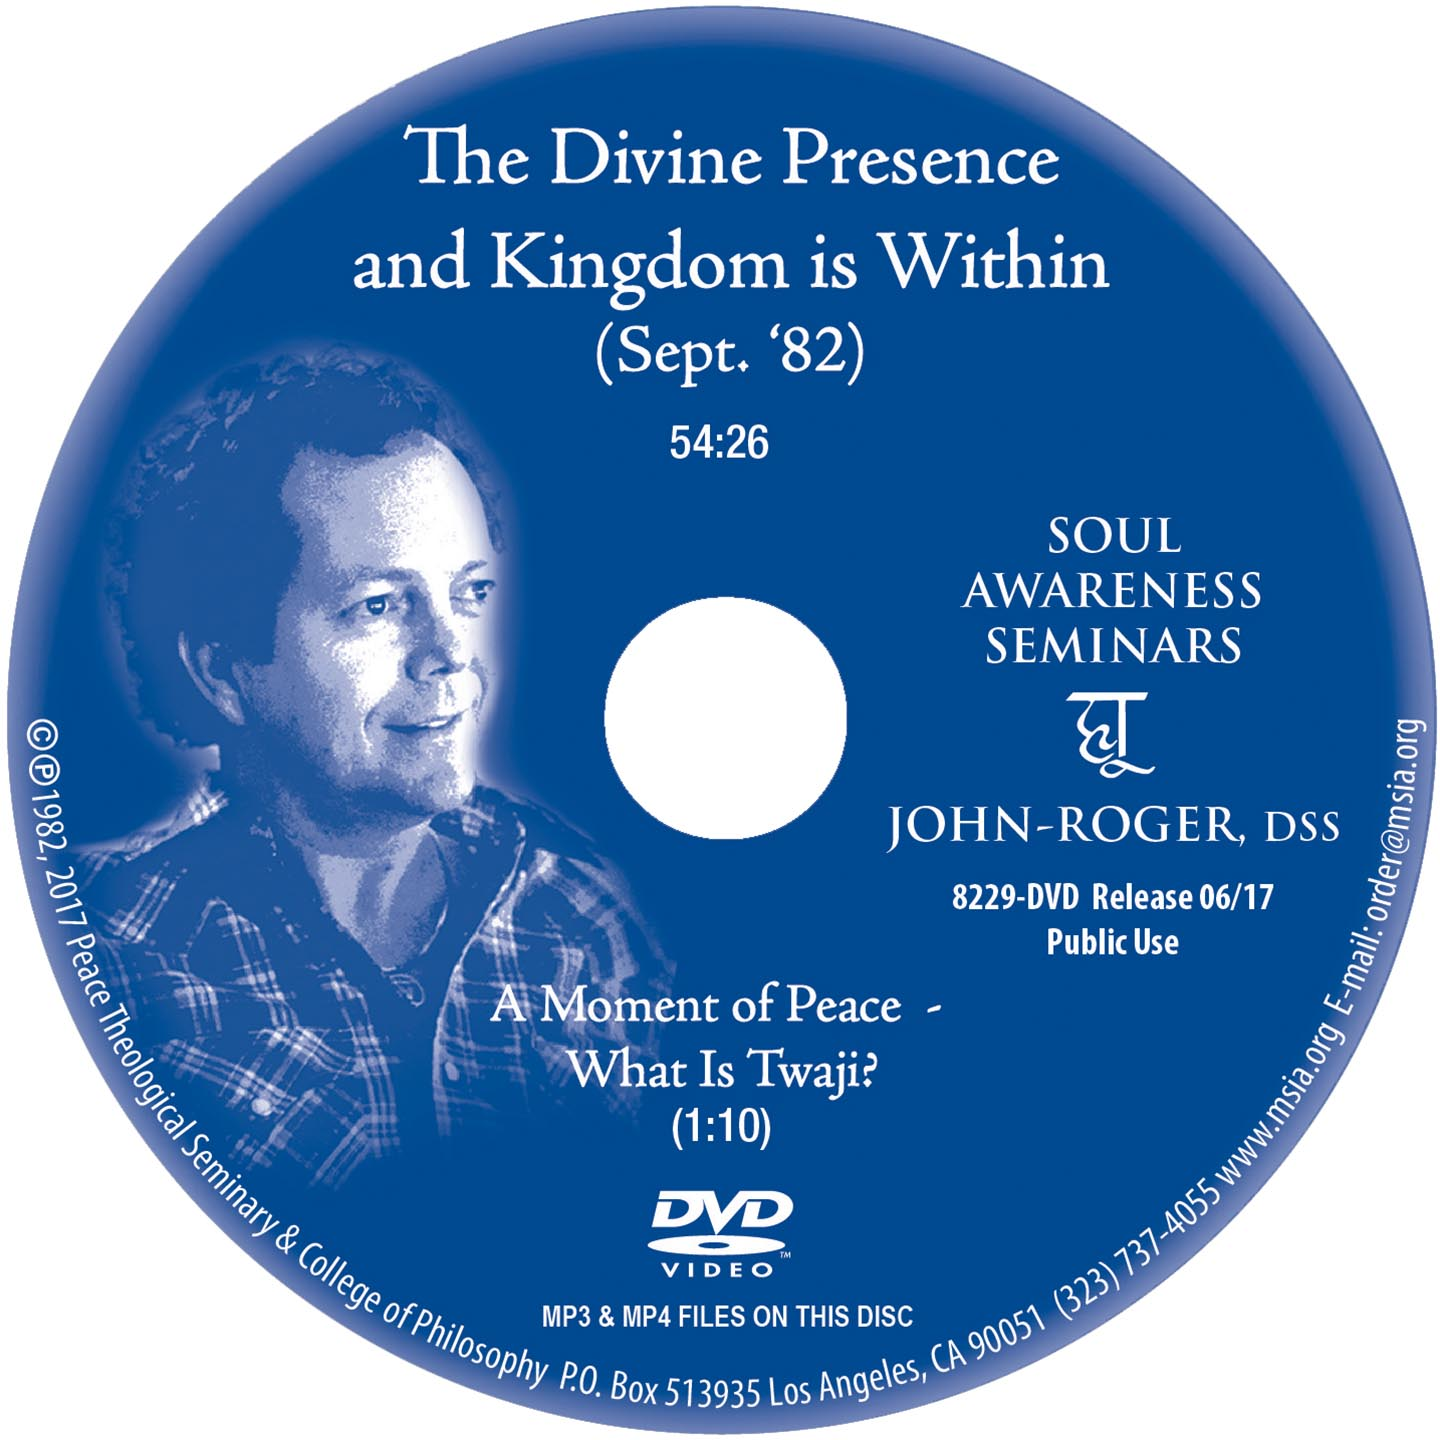 The Divine Presence and Kingdom is Within MP4